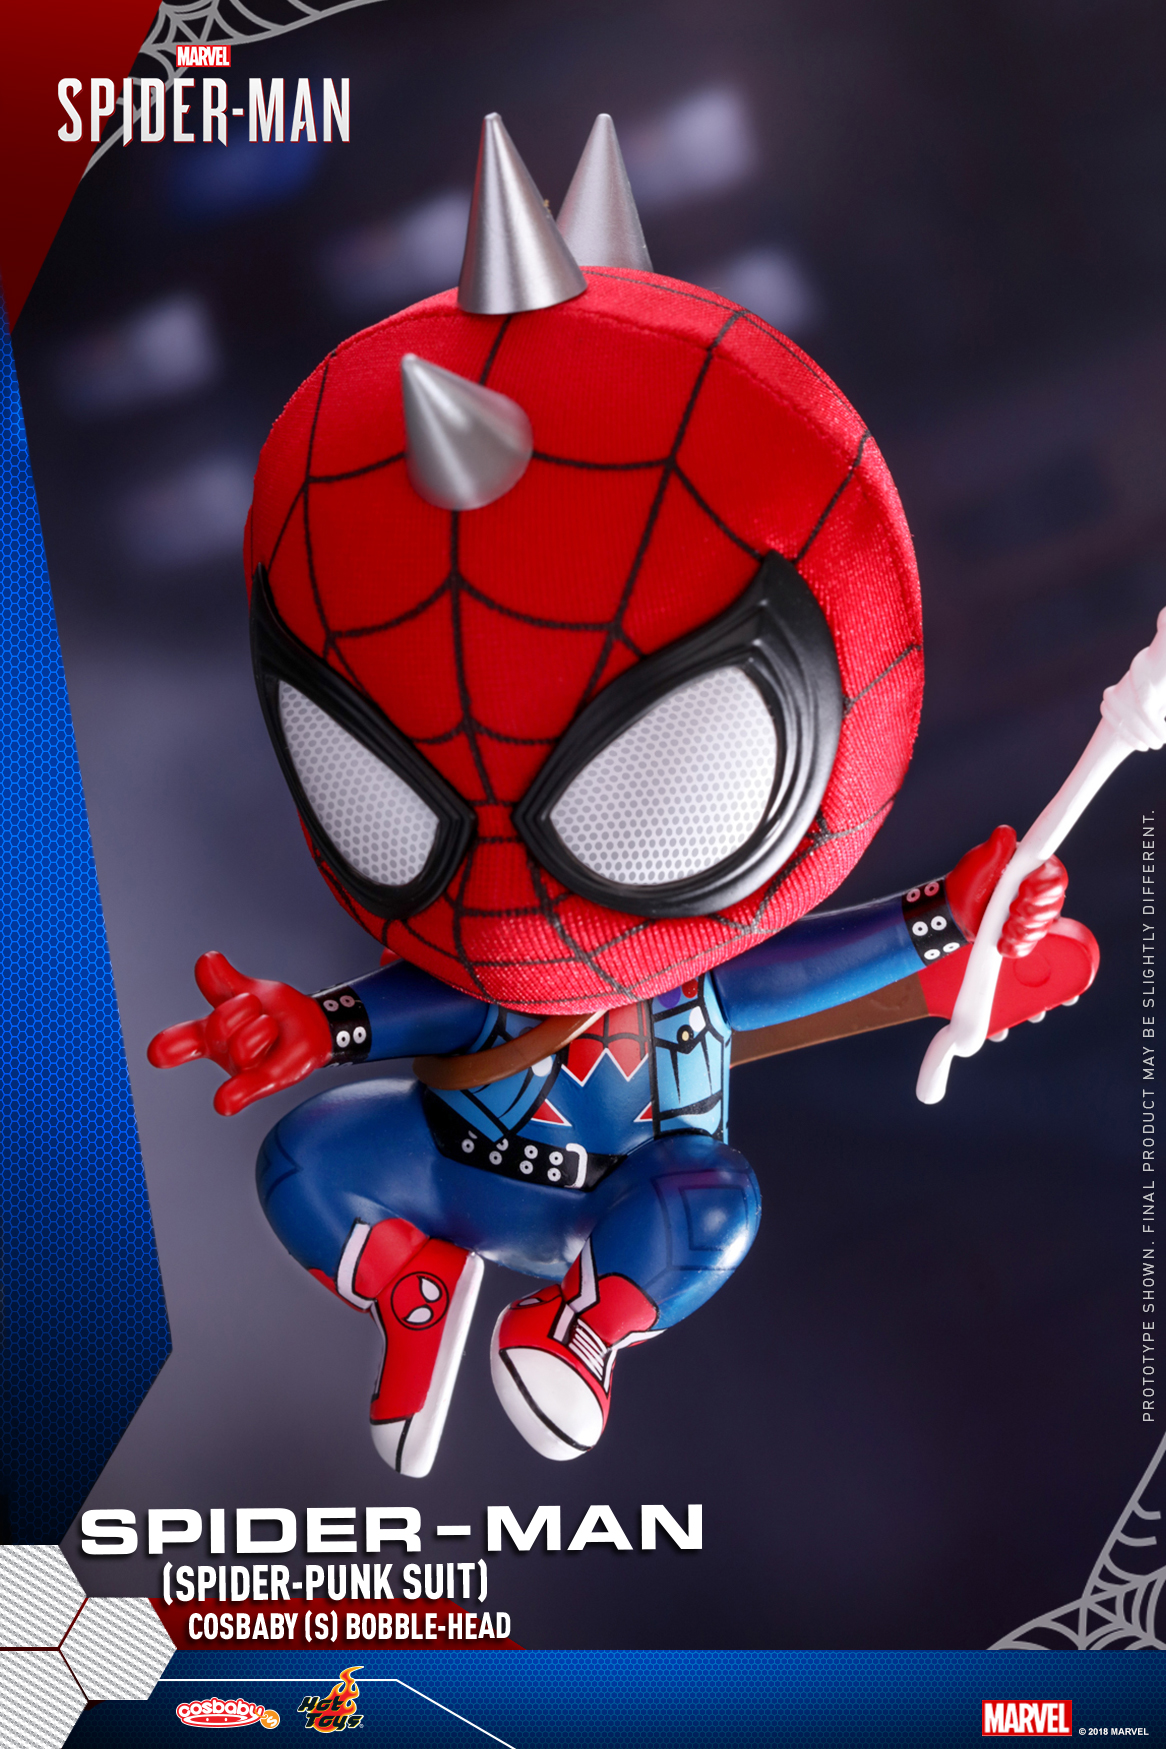 Hot Toys - Marvel Spider-Man - Spider-Man (Spider-Punk Suit) Cosbaby_PR1